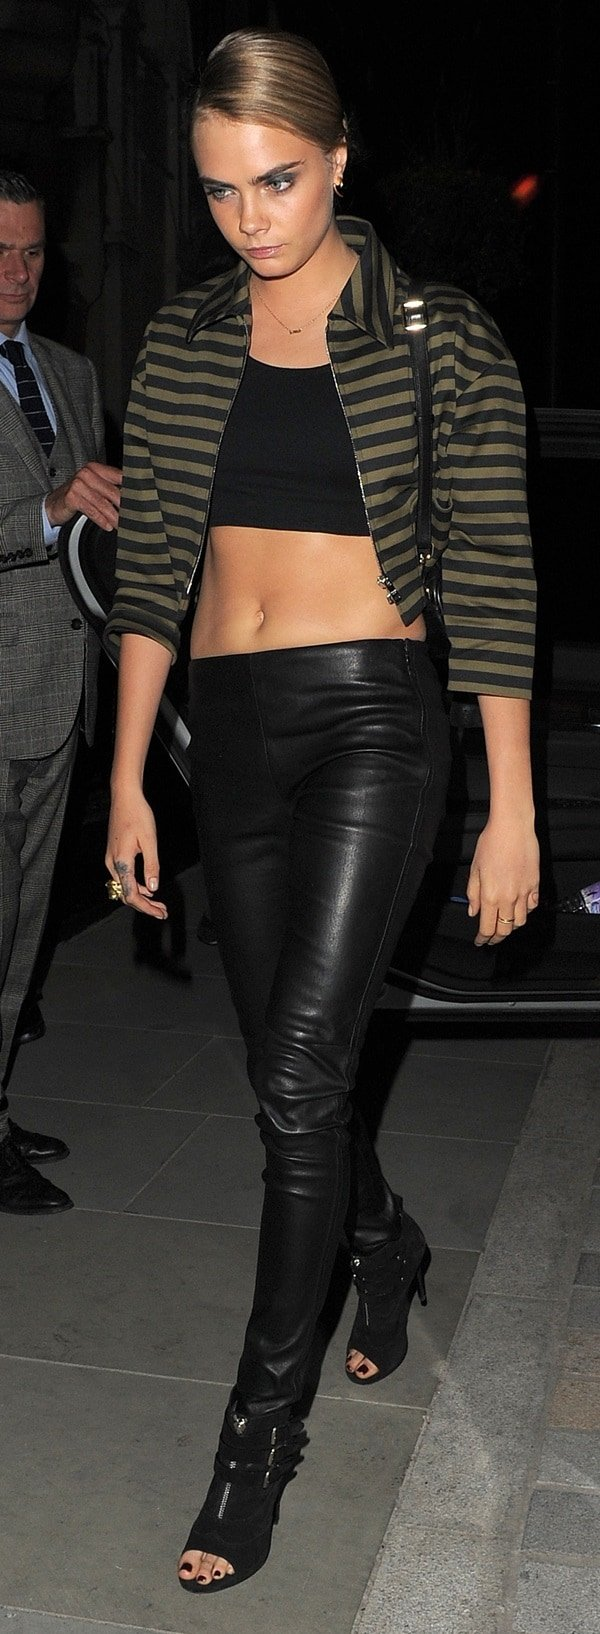 Cara Delevingnein black leather pants paired with a crop top layered beneath a striped blazer